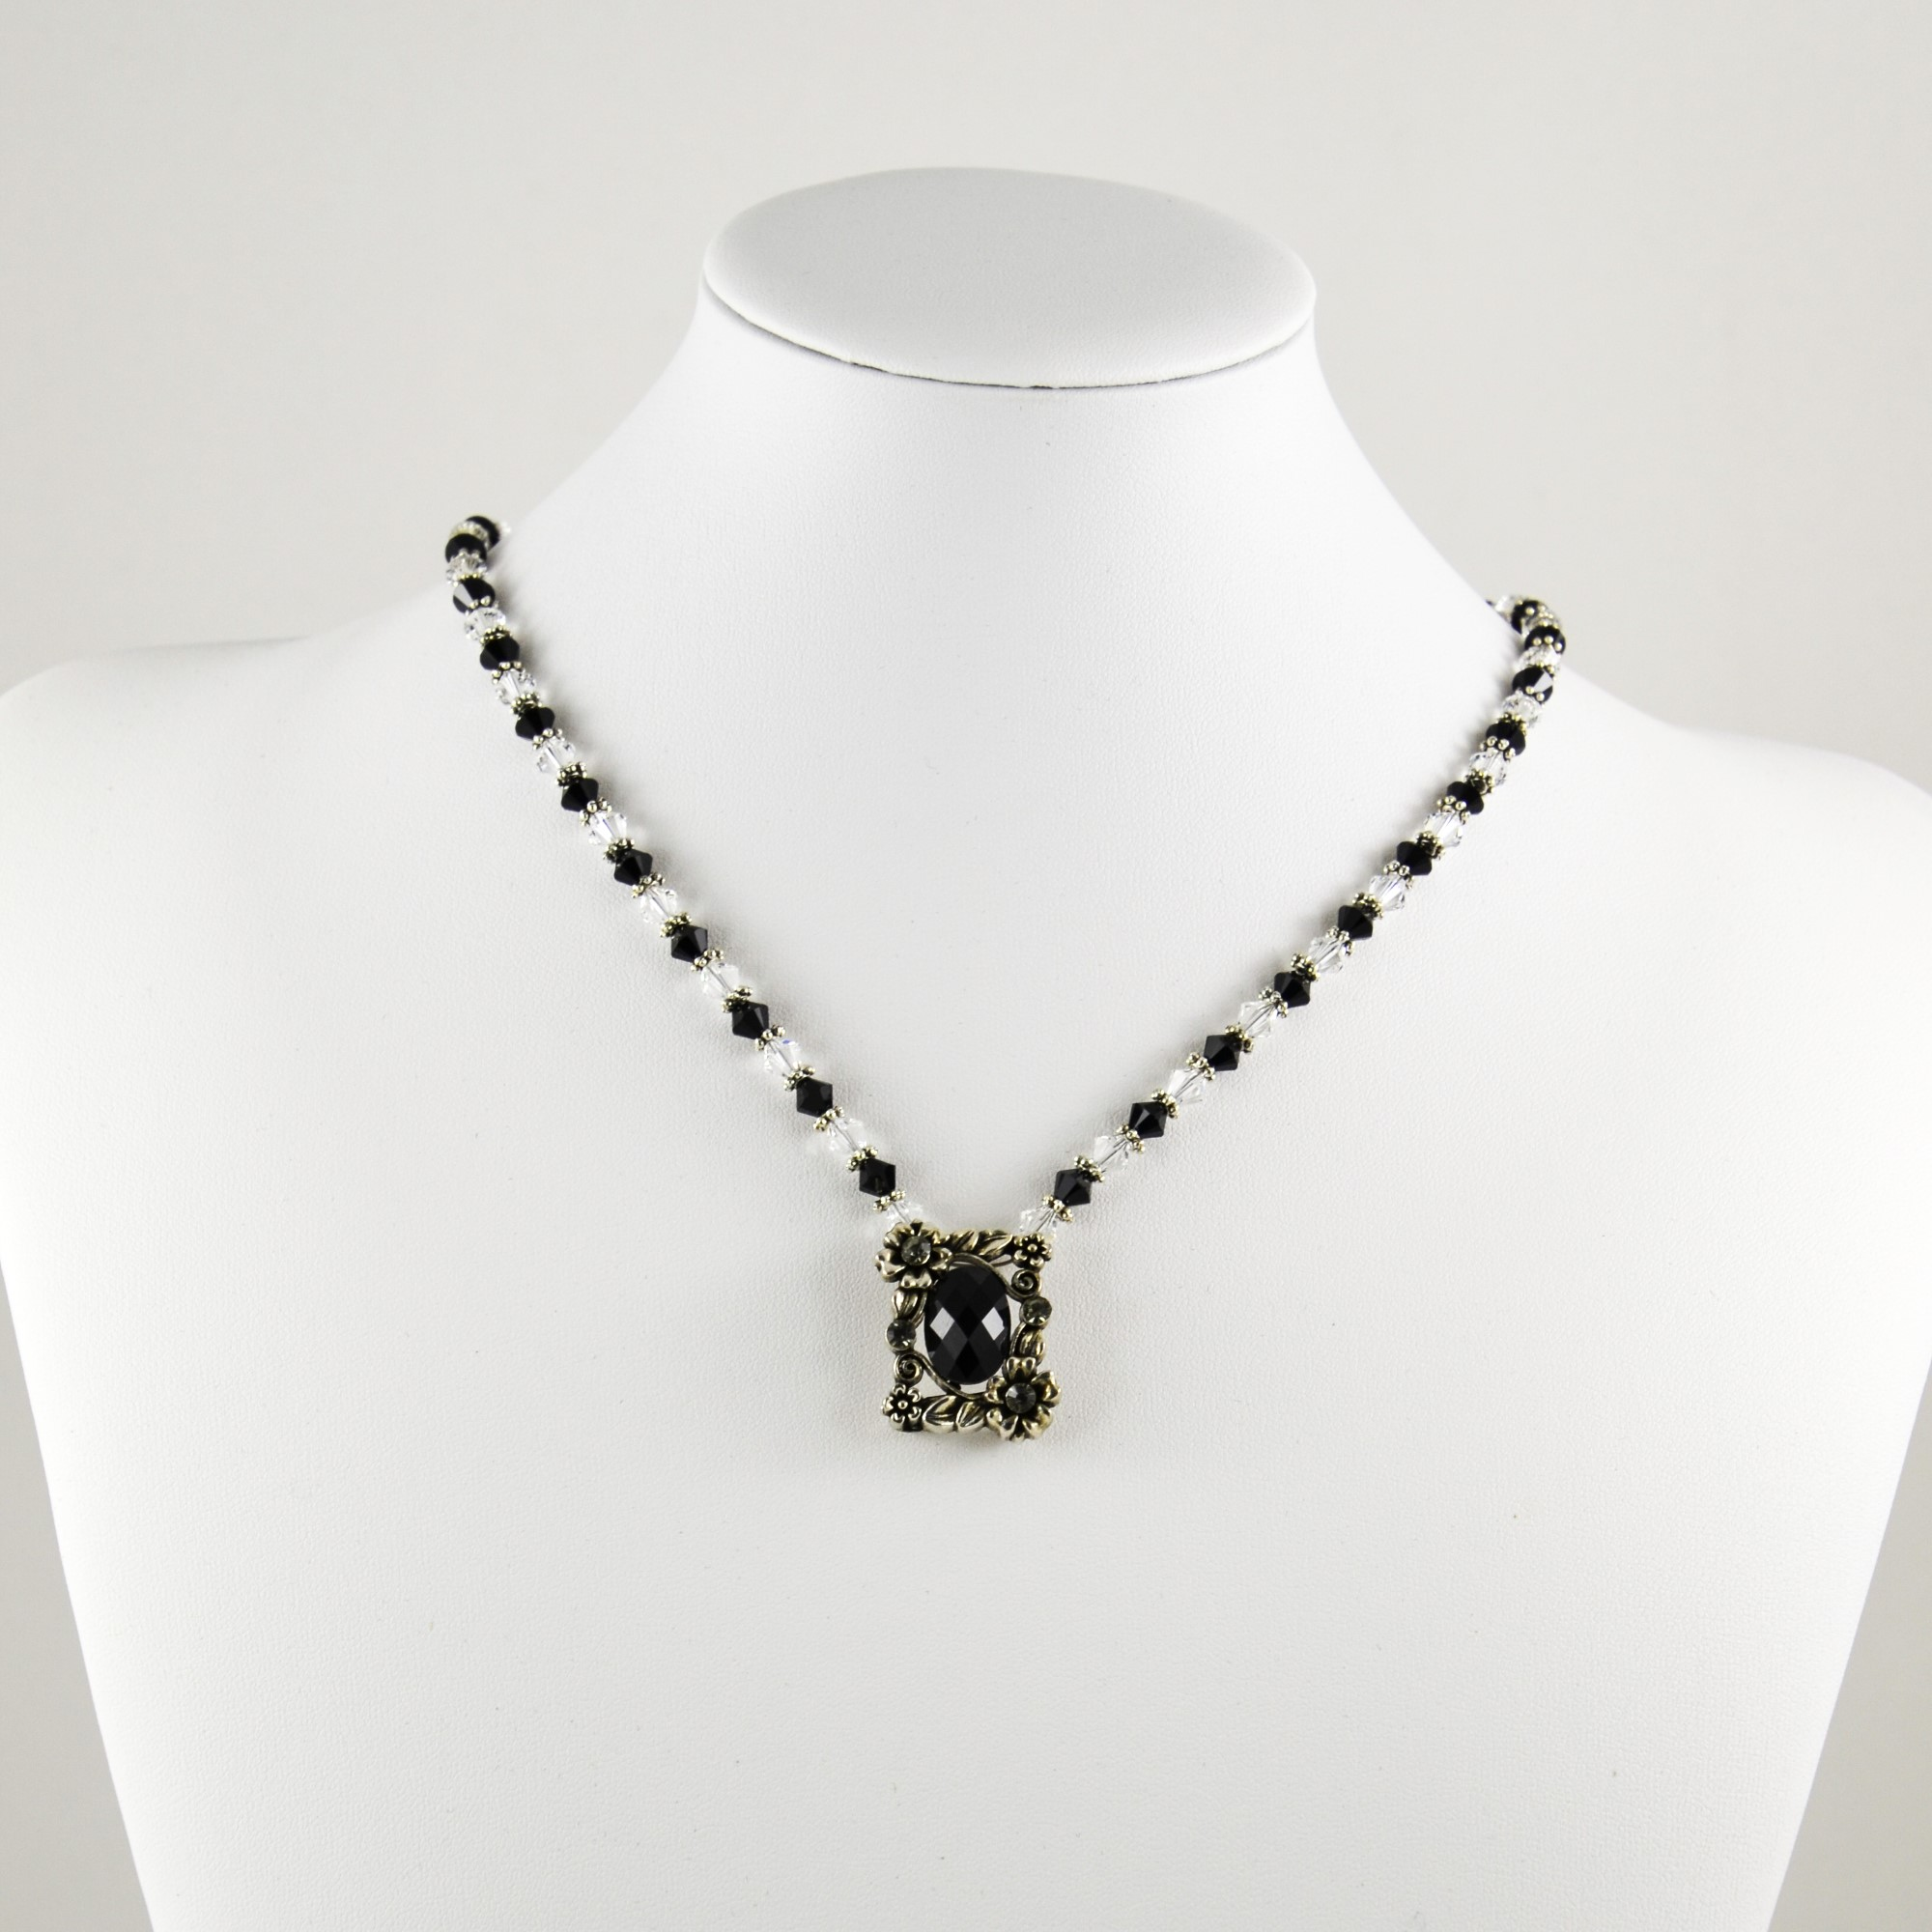 krystal brass krysztalem shop mountain gorskim crystal necklace naszyjnik z silver jewellery pendant